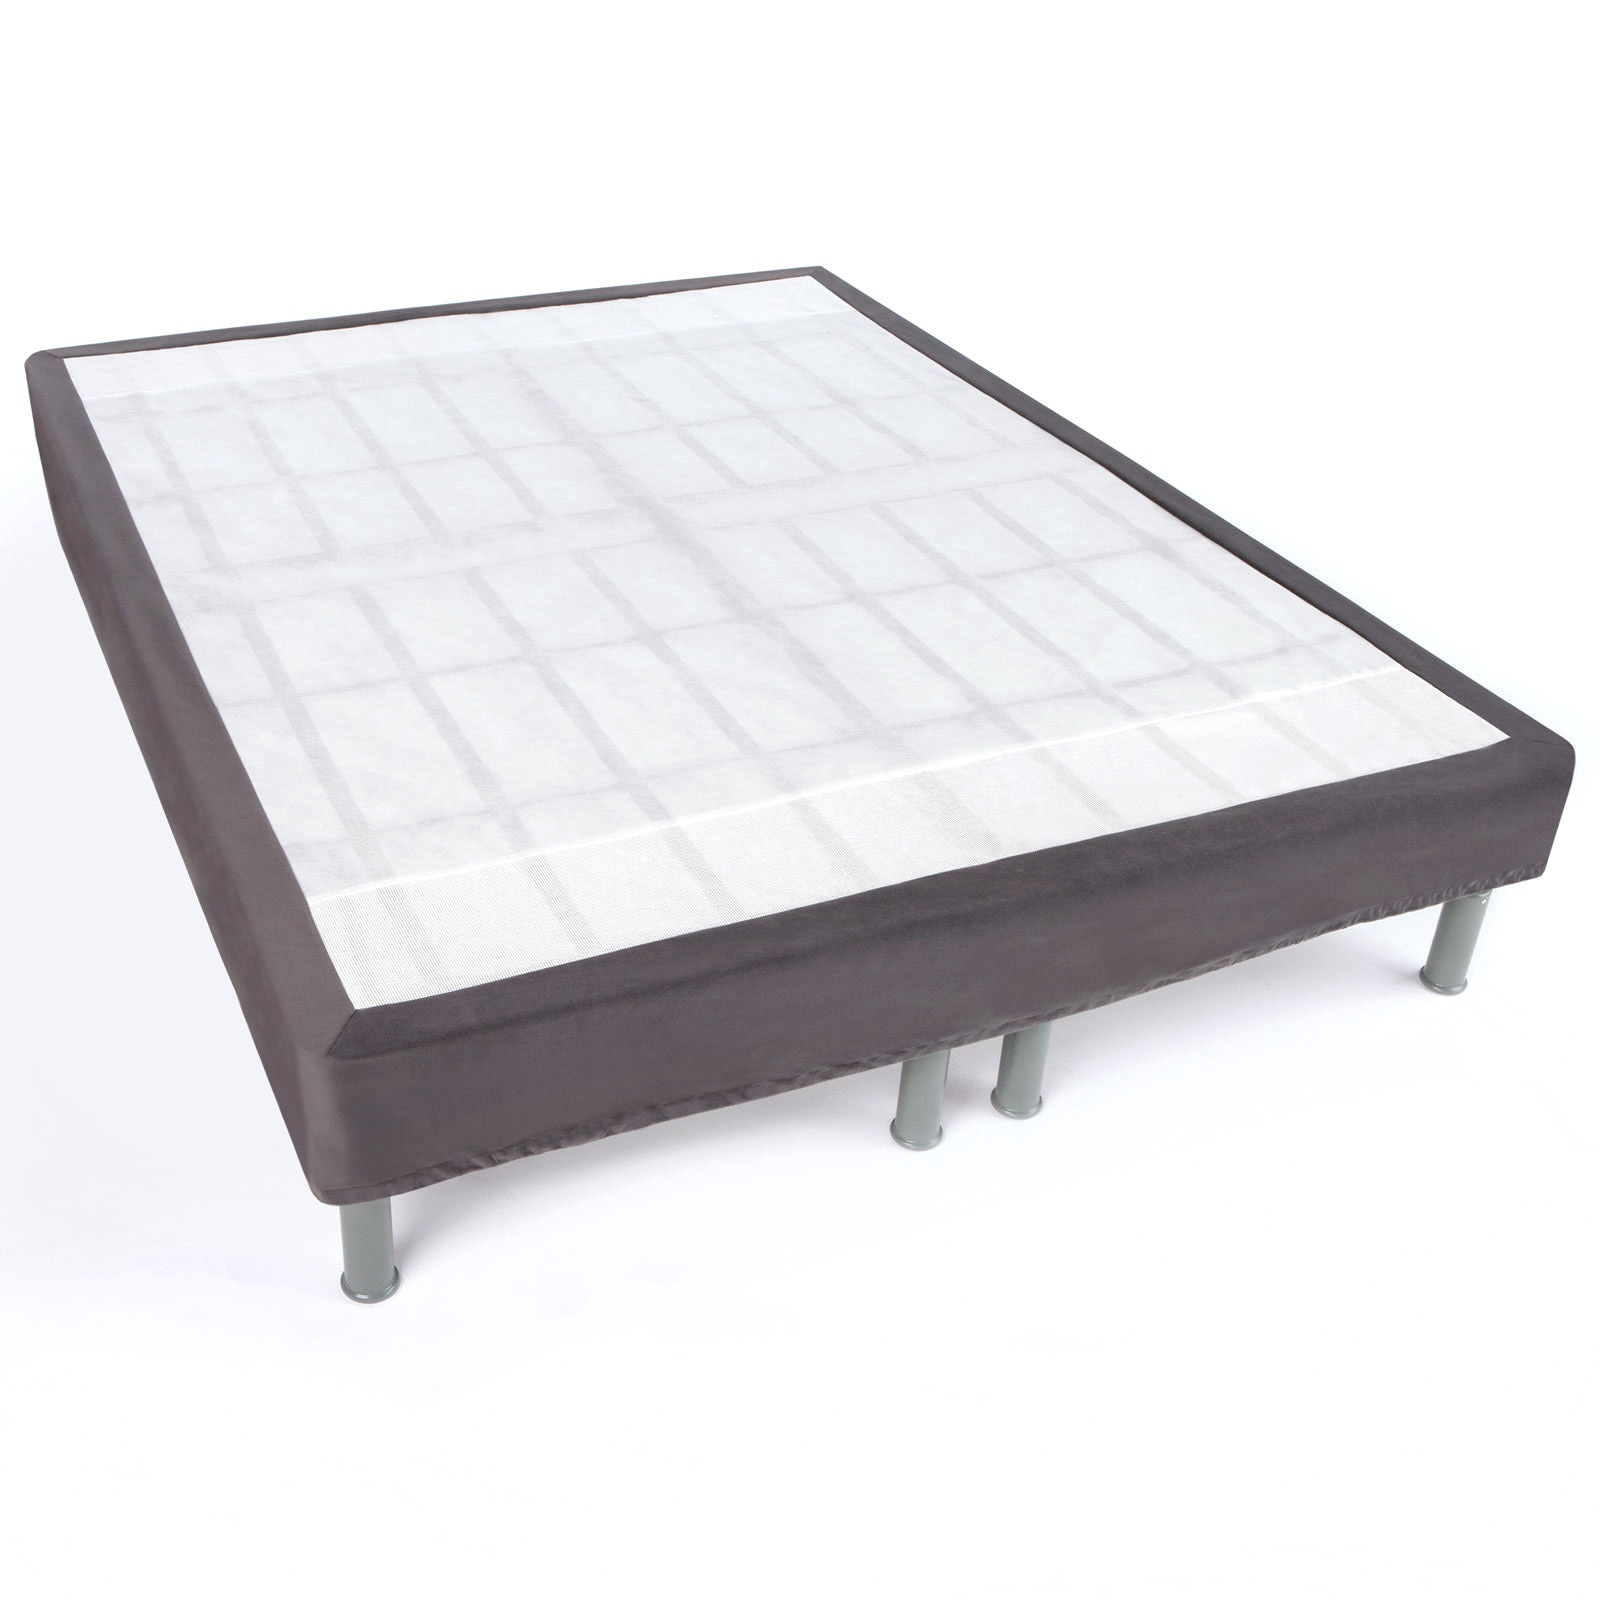 Comfort Memories Steel (Silver) Queen-size Mattress Found...